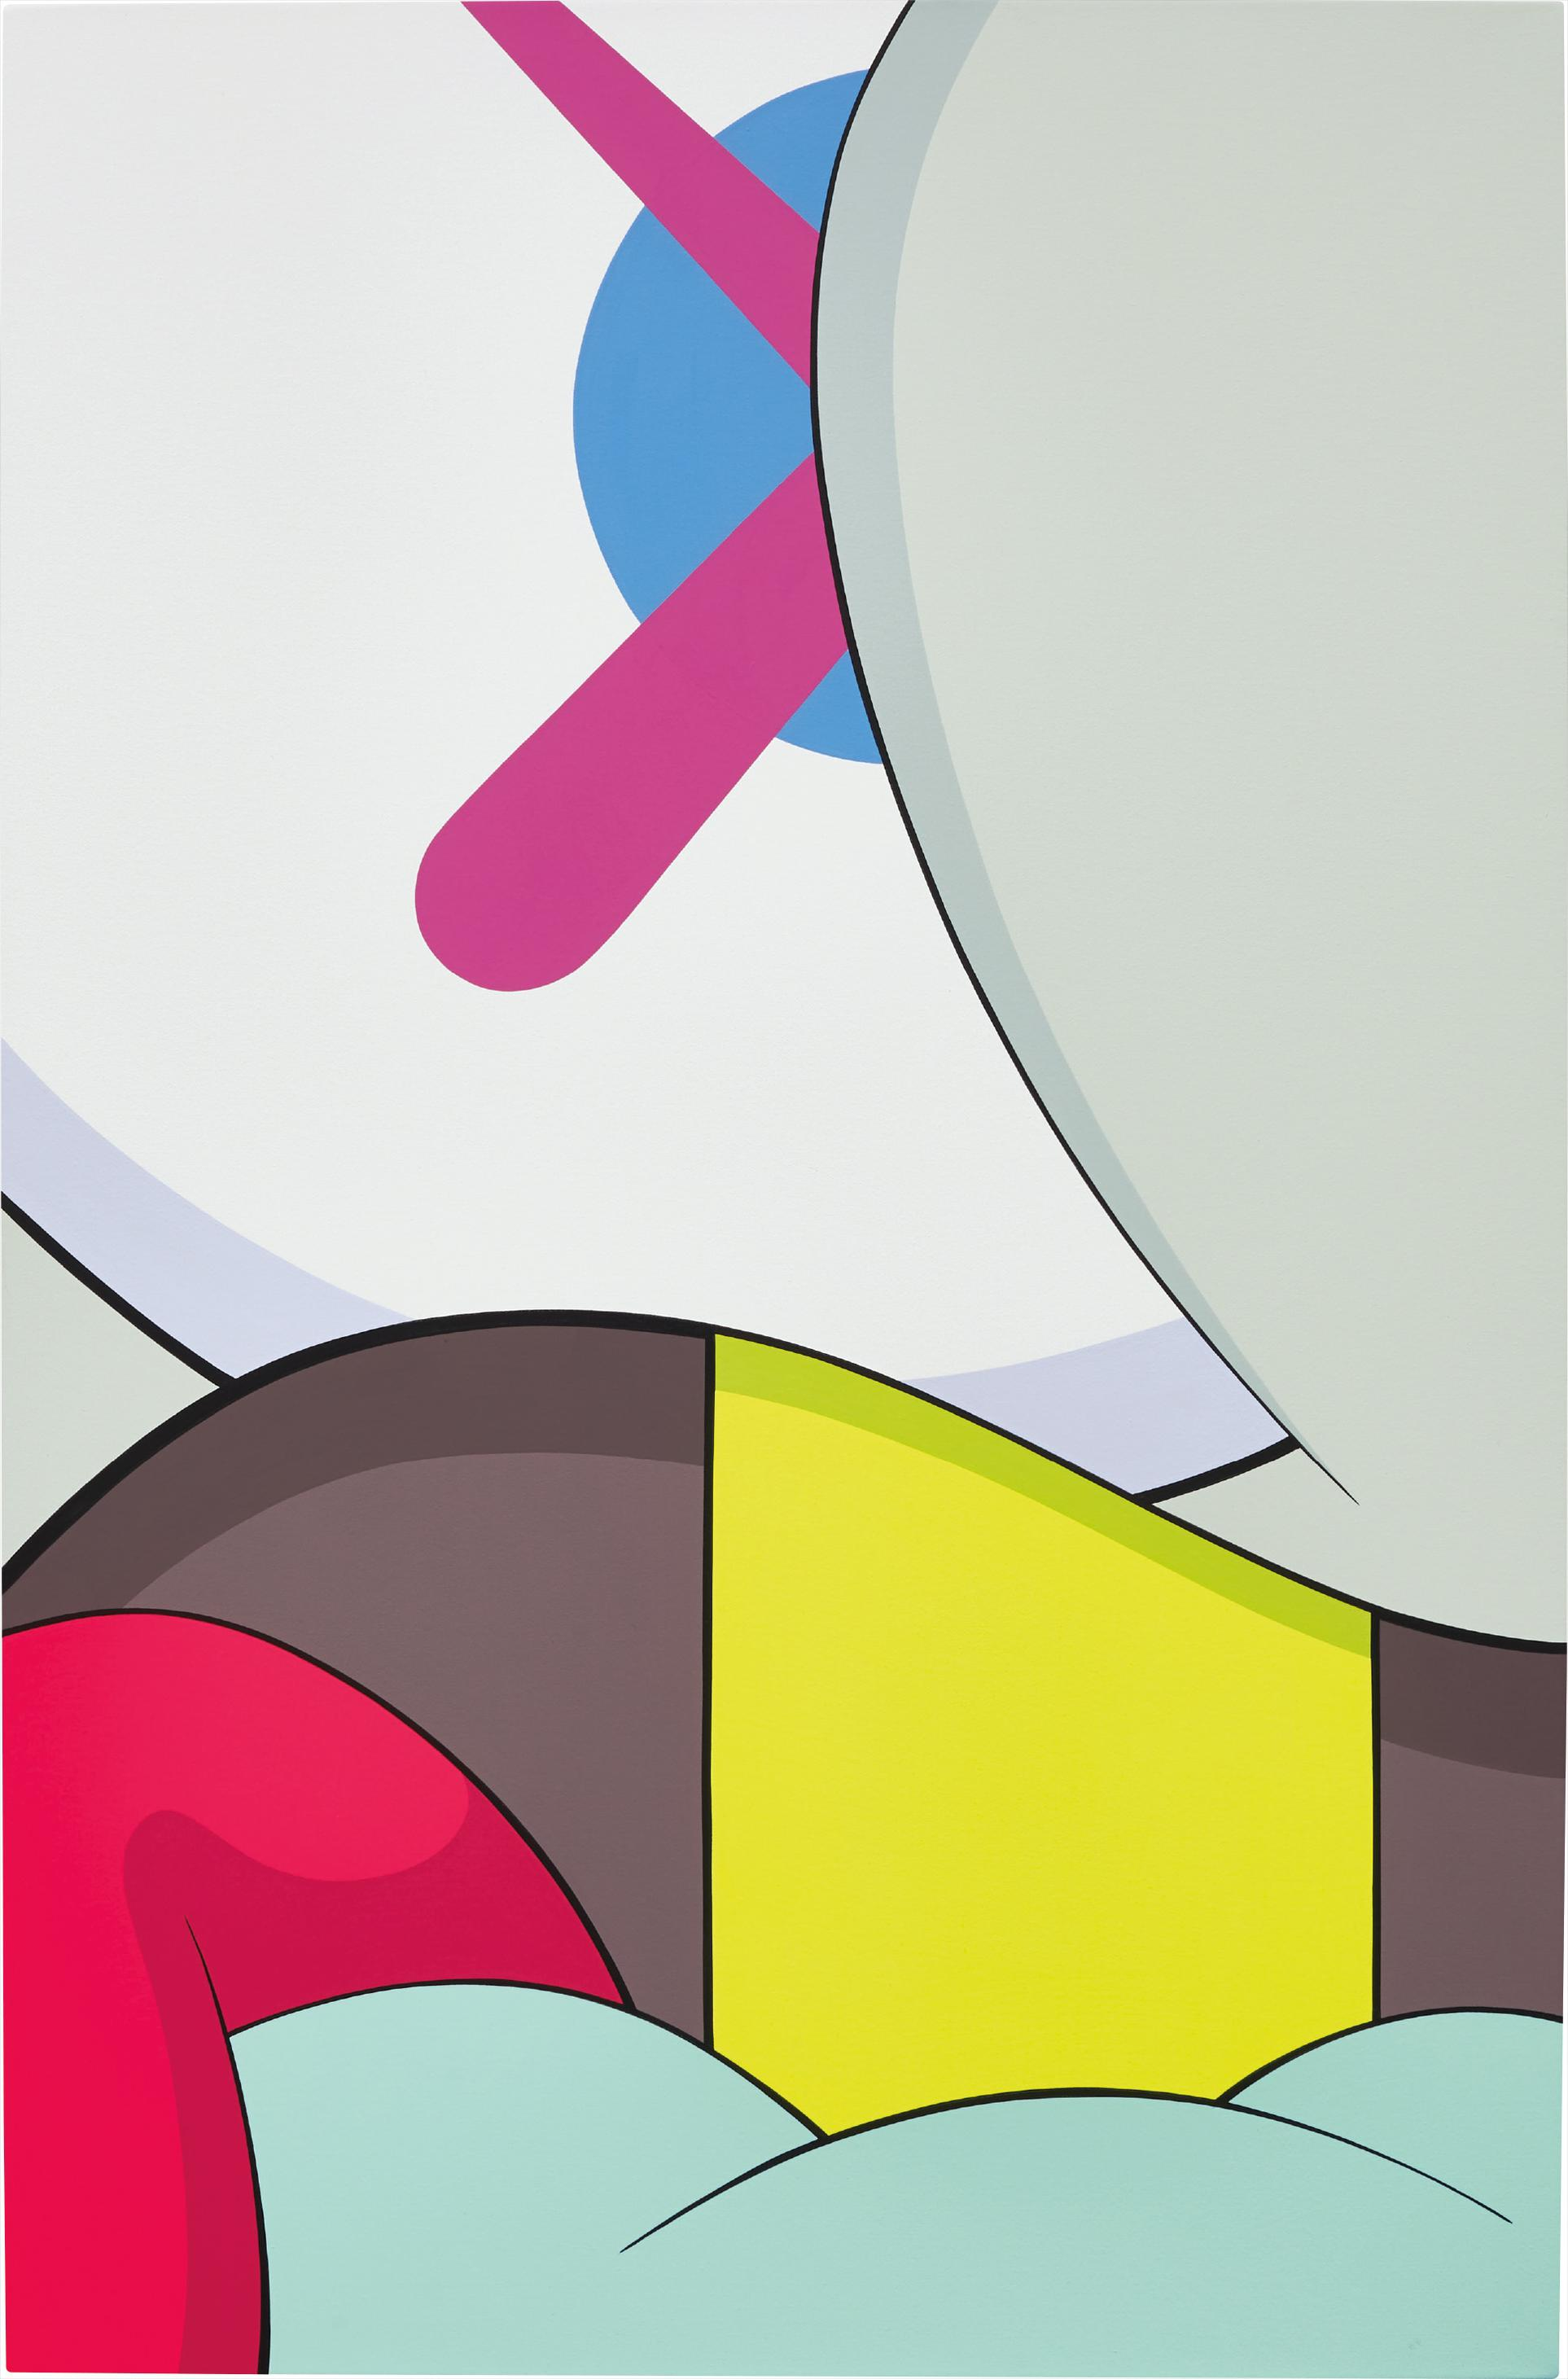 KAWS-Untitled-2014